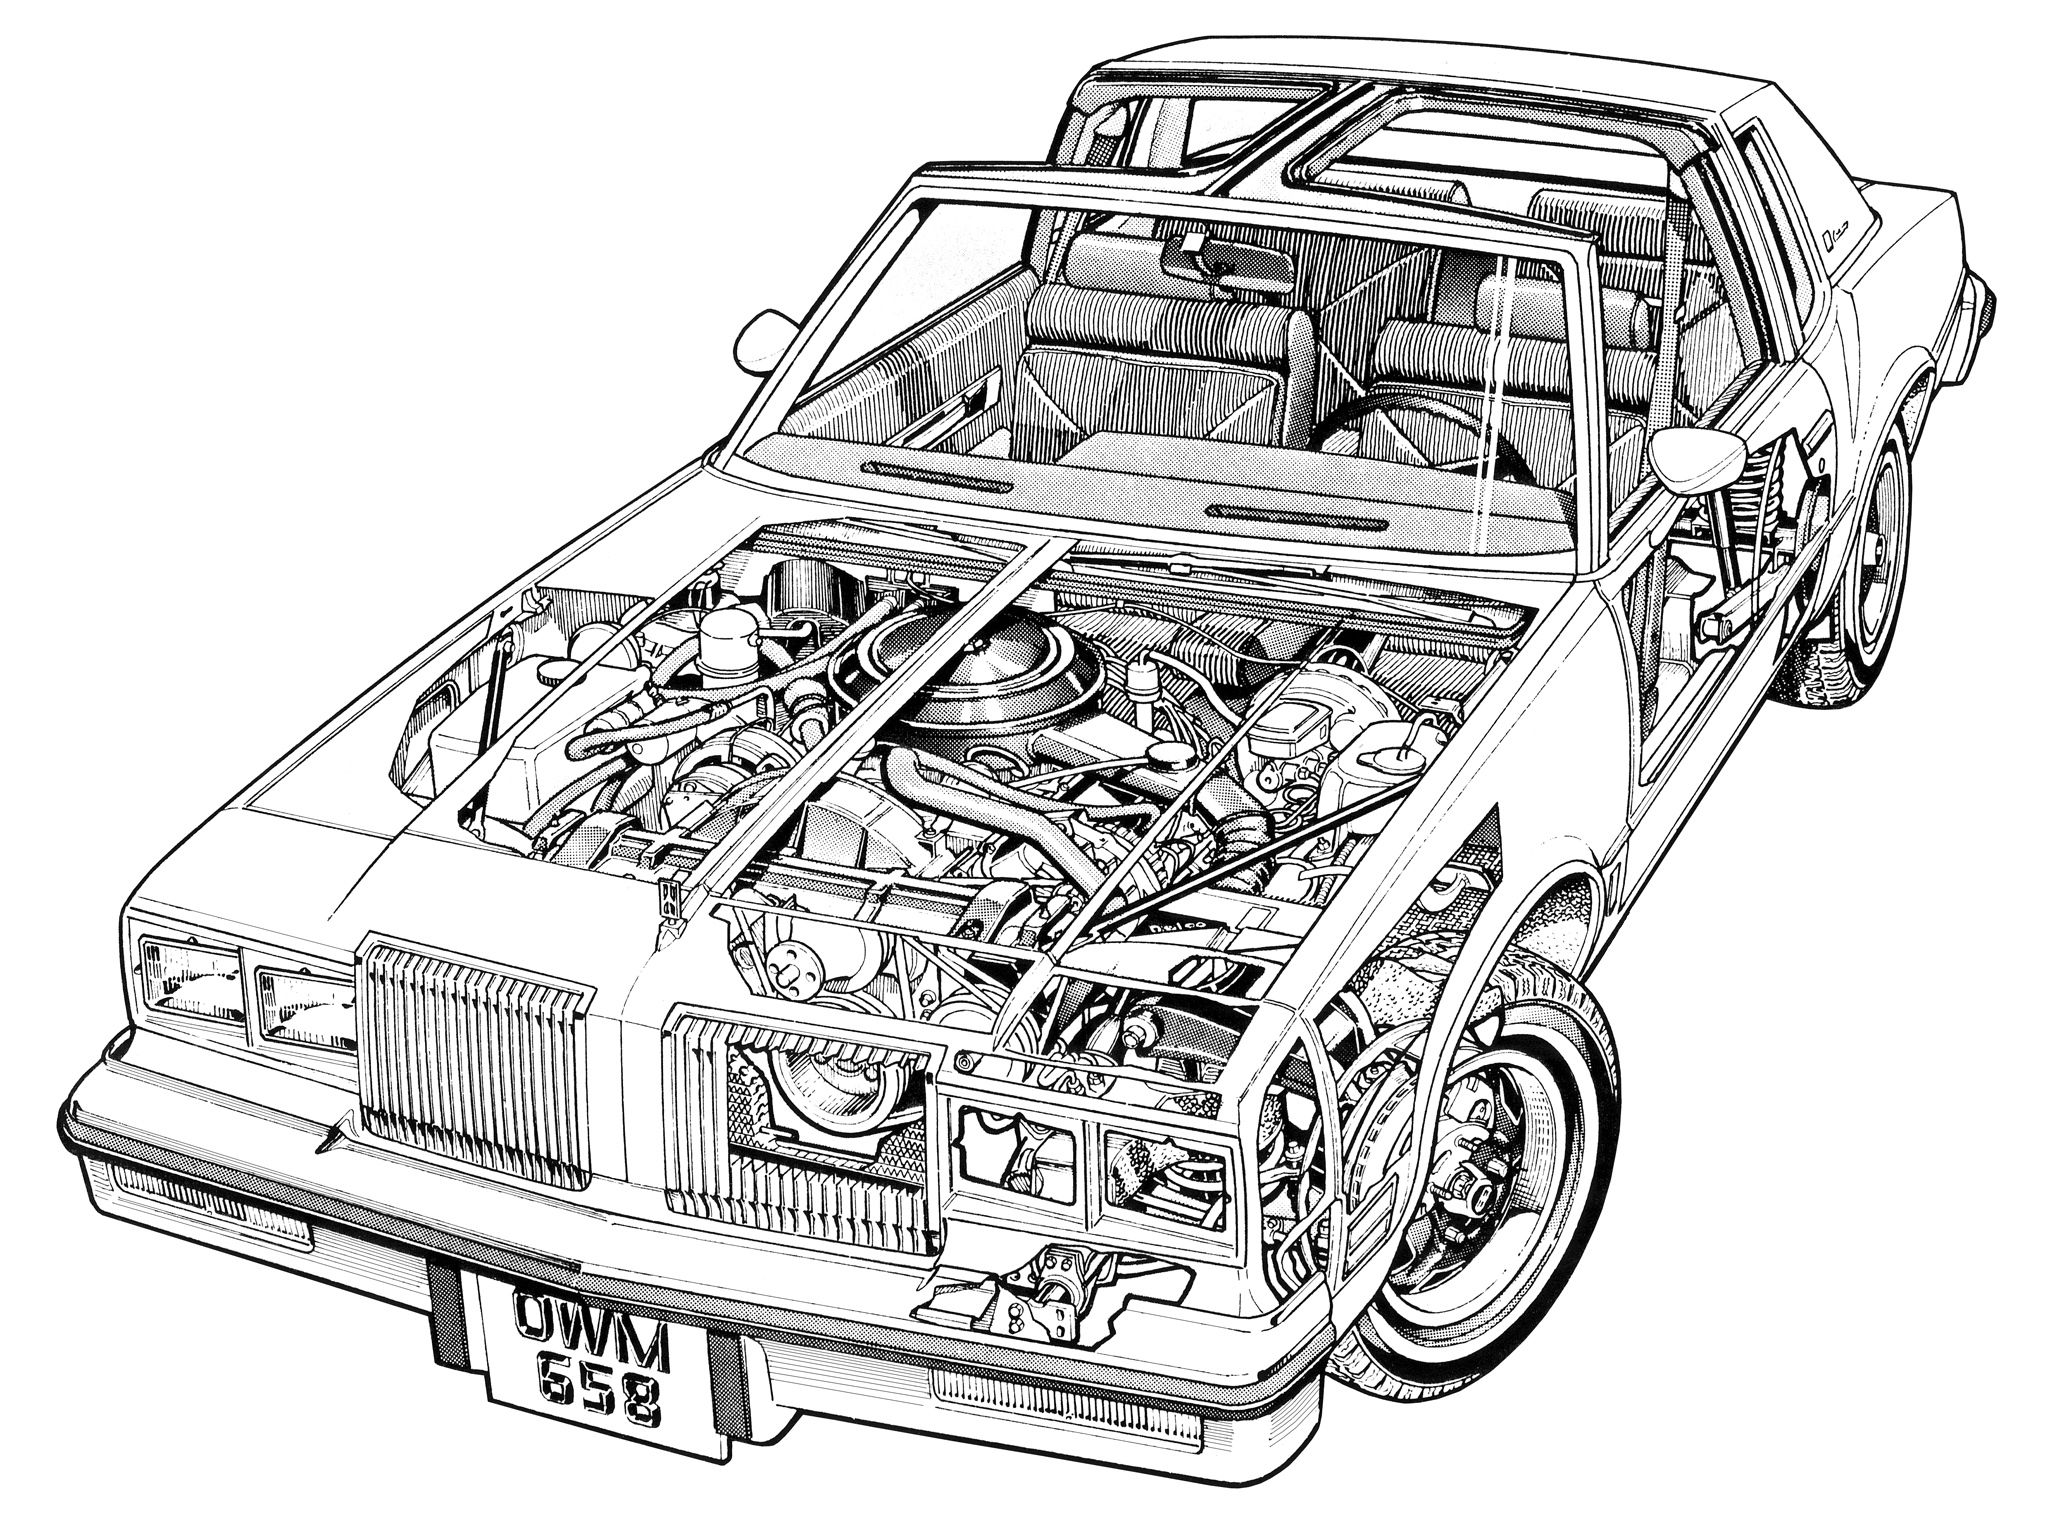 oldsmobile cutlass t-top - illustrated by terry davey